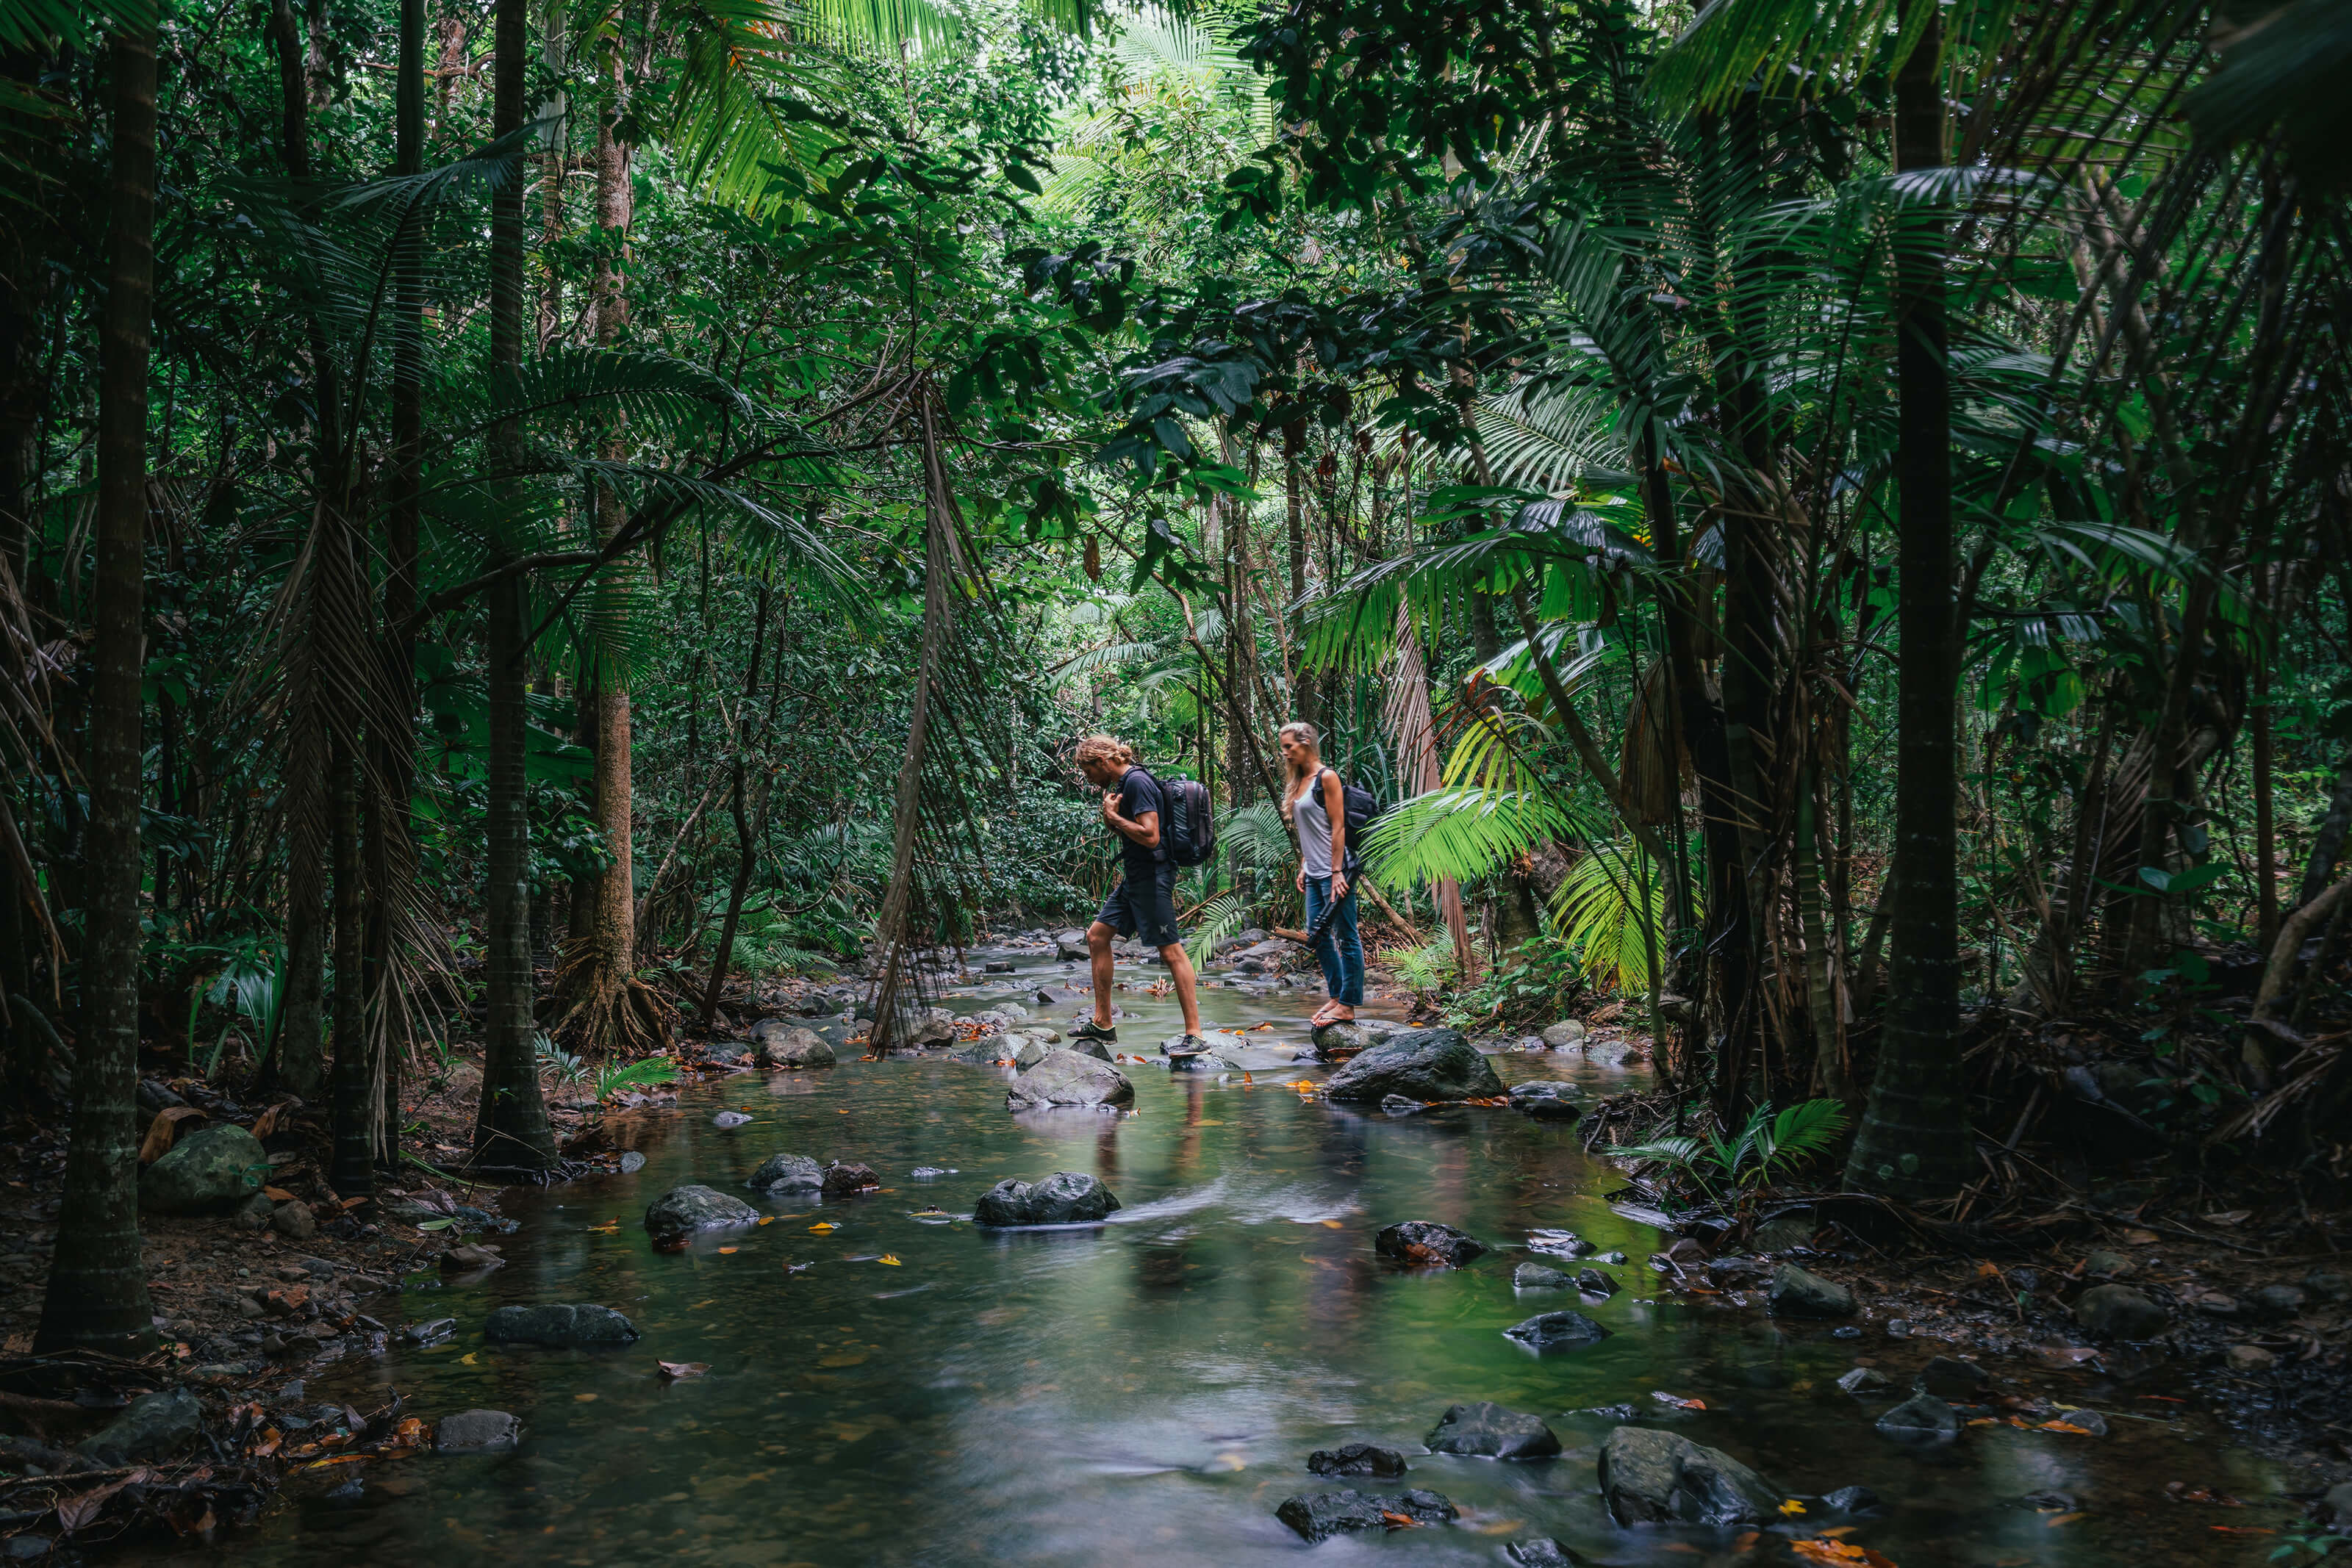 hiking in the Daintree Rainforest